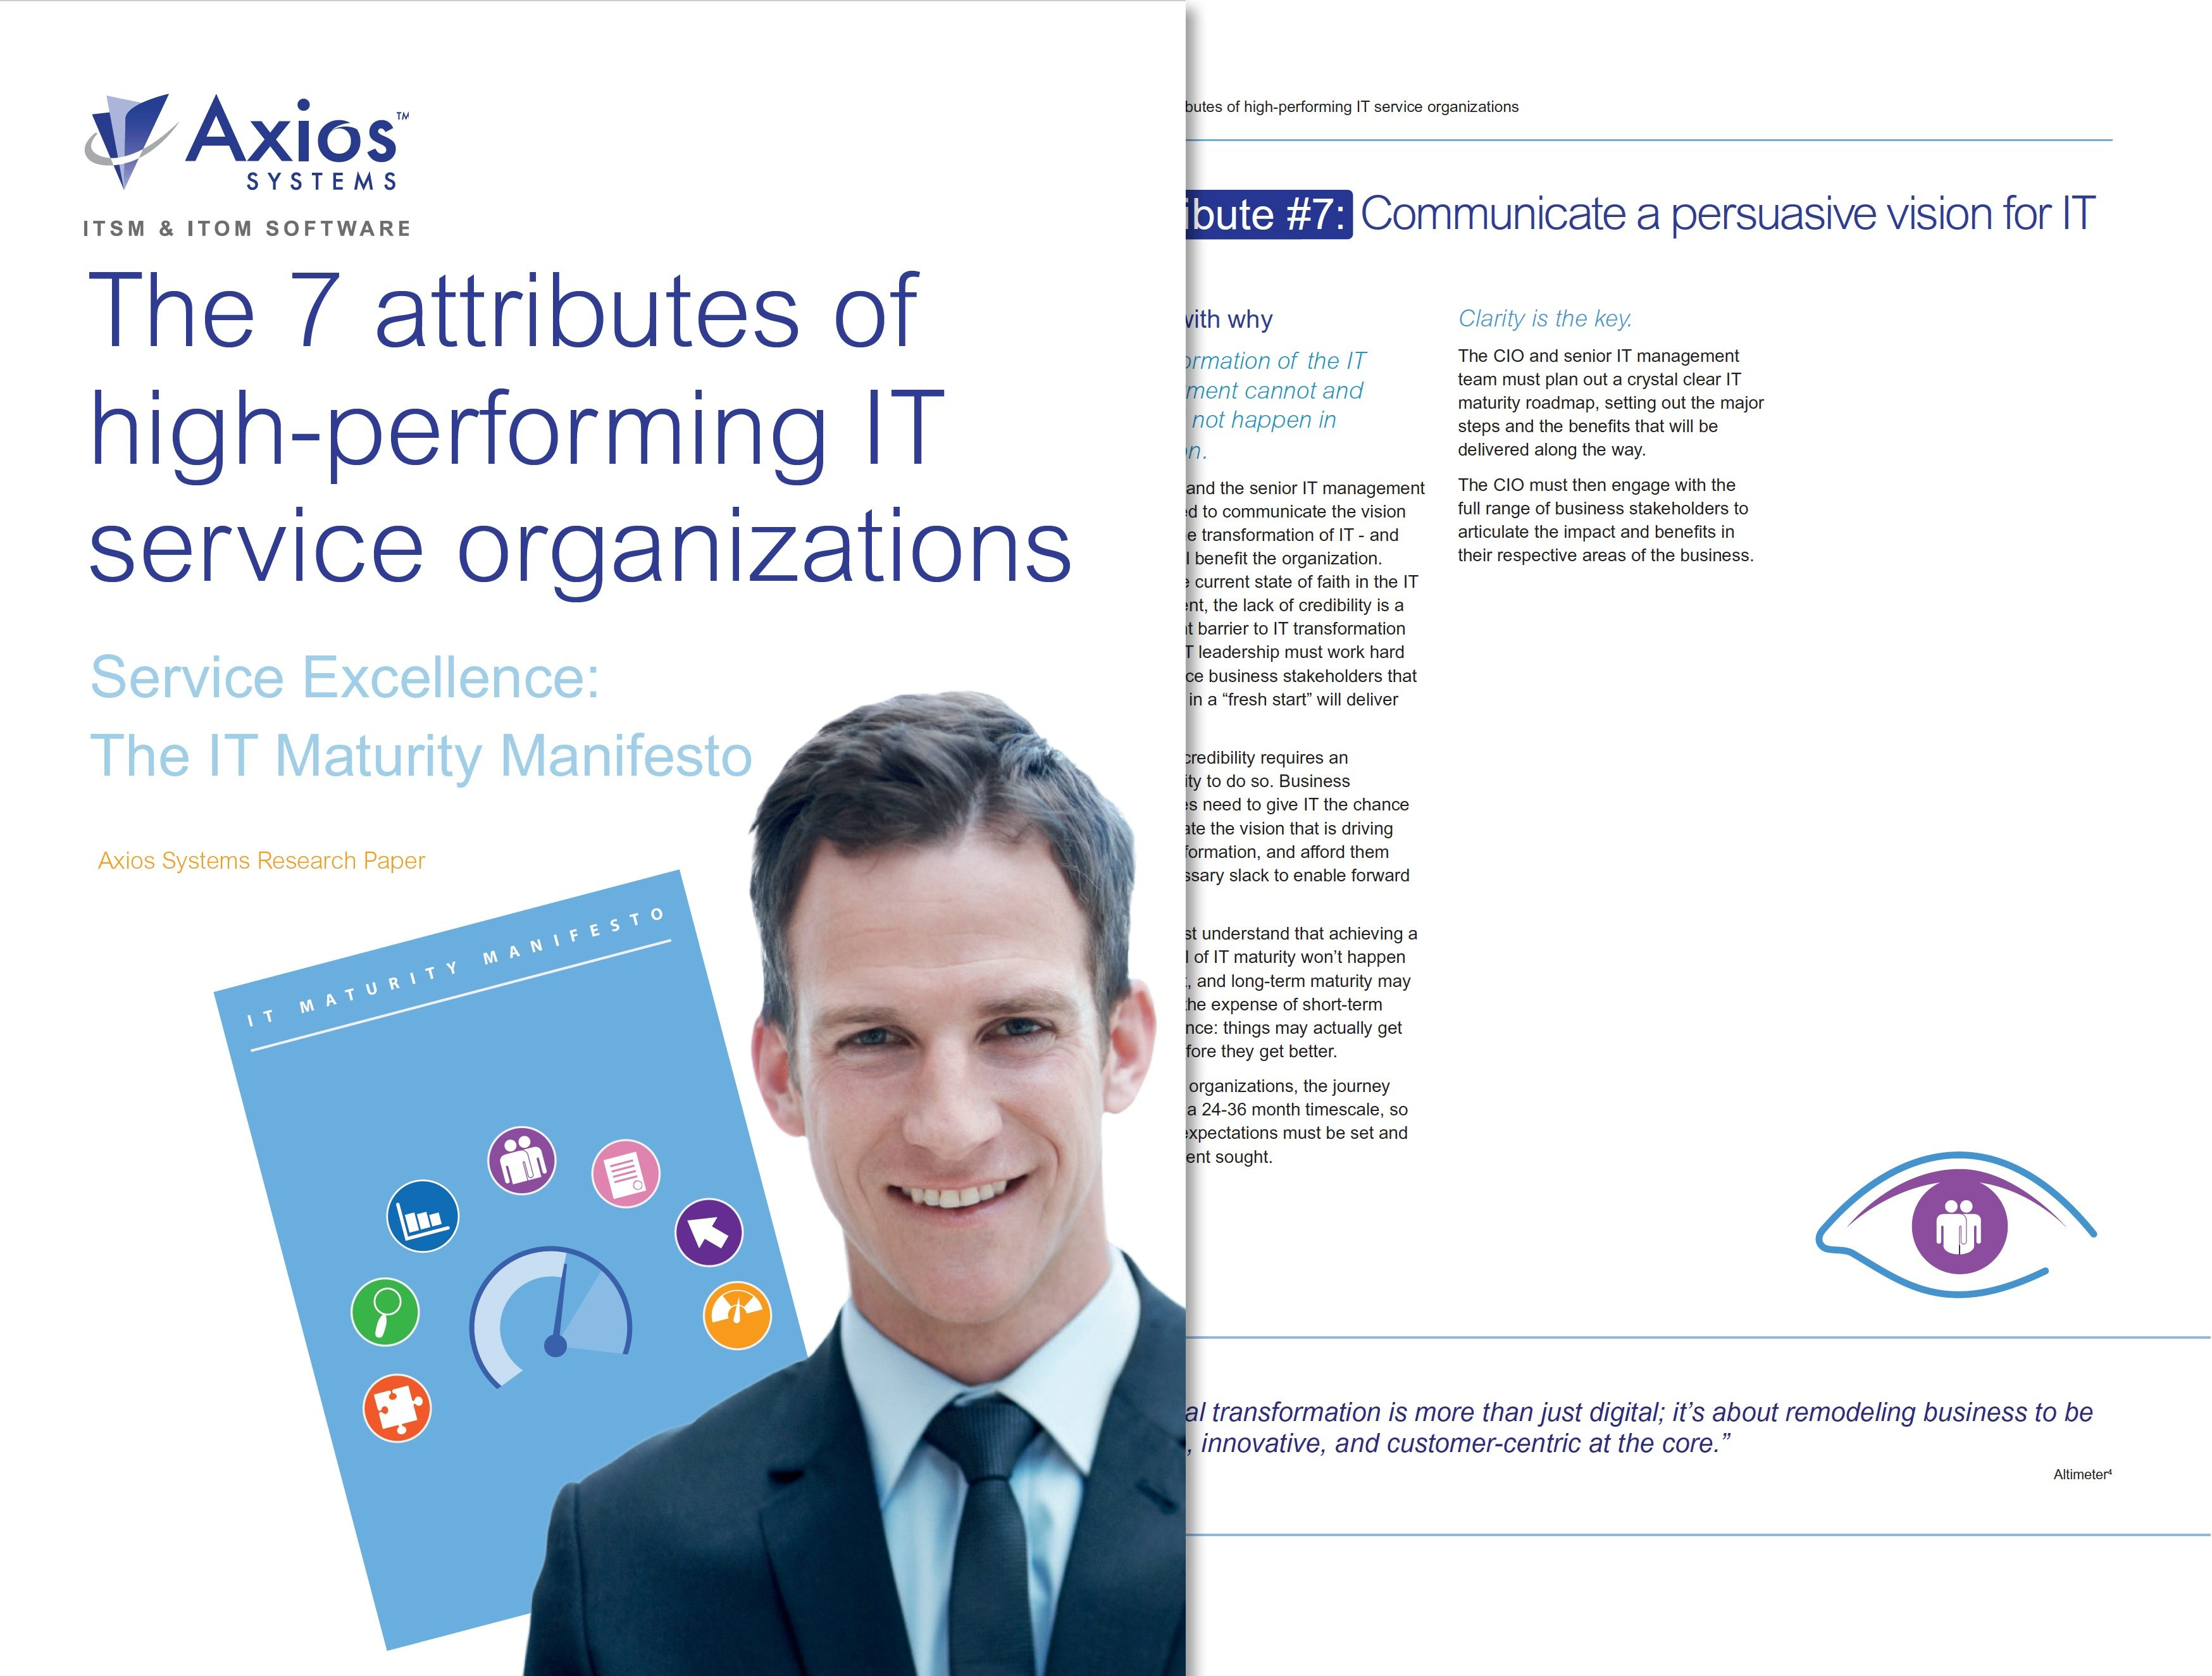 IT whitepaper: The 7 attributes of high-performing service organzations